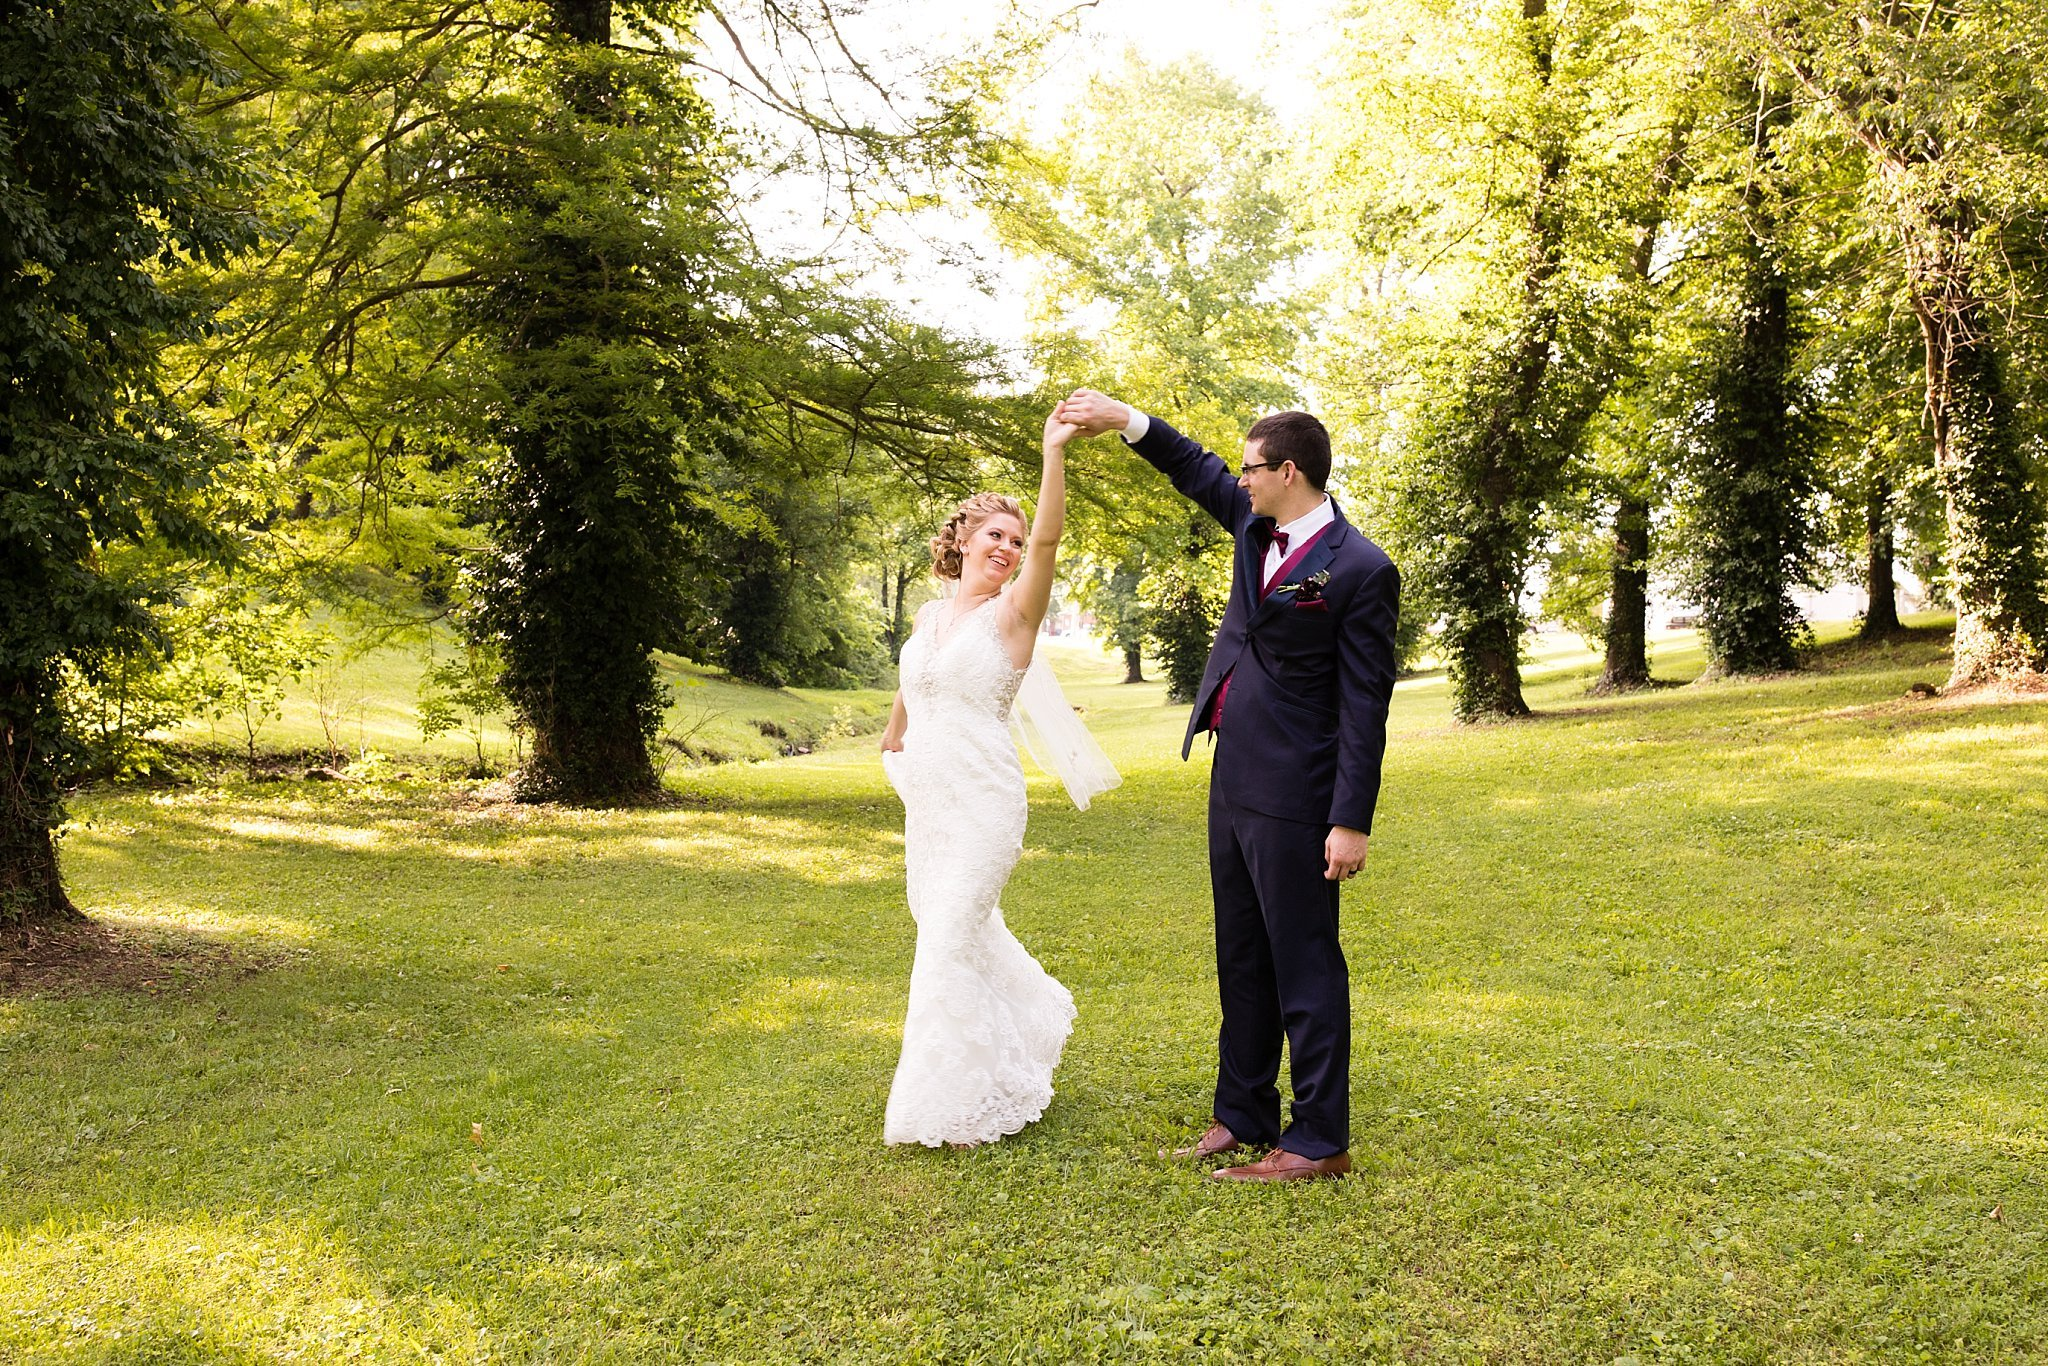 Lauren T Photography - We met Lauren at Rachel and Zachary Mills' wedding at The Gateway Center in Collinsville. I was so impressed with Lauren's professionalism, kindness, and ability to flow with a timeline and any unexpected issues. Rachel and Zach were one of the couples affected in the Villa Marie Winery shutdown, and Rachel was key in helping our couple to find a new venue. Other than that, her art is absolutely gorgeous!https://laurentphotographystl.com/